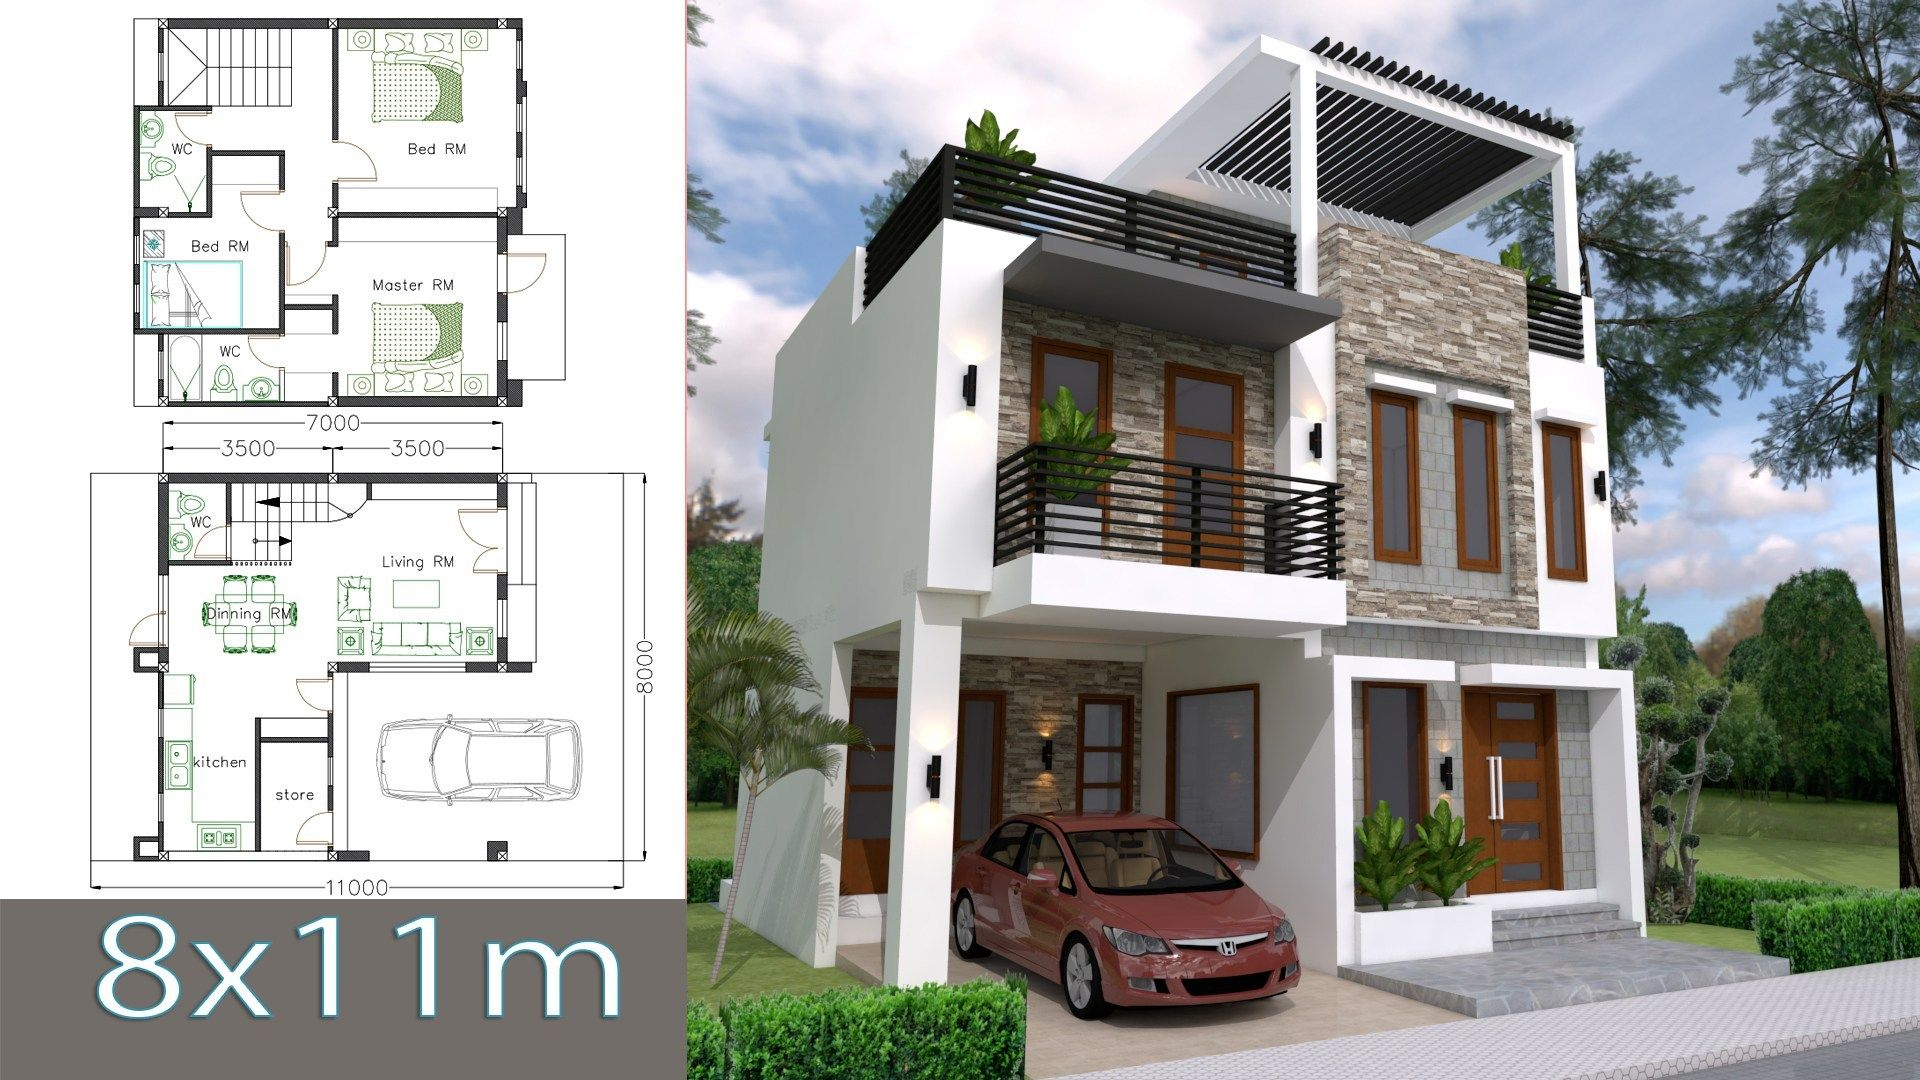 Home Design Plan 8x11m With 3 Bedrooms This Villa Is Modeling By Sam Architect With 2 Stories Level House Arch Design Simple House Design Duplex House Design